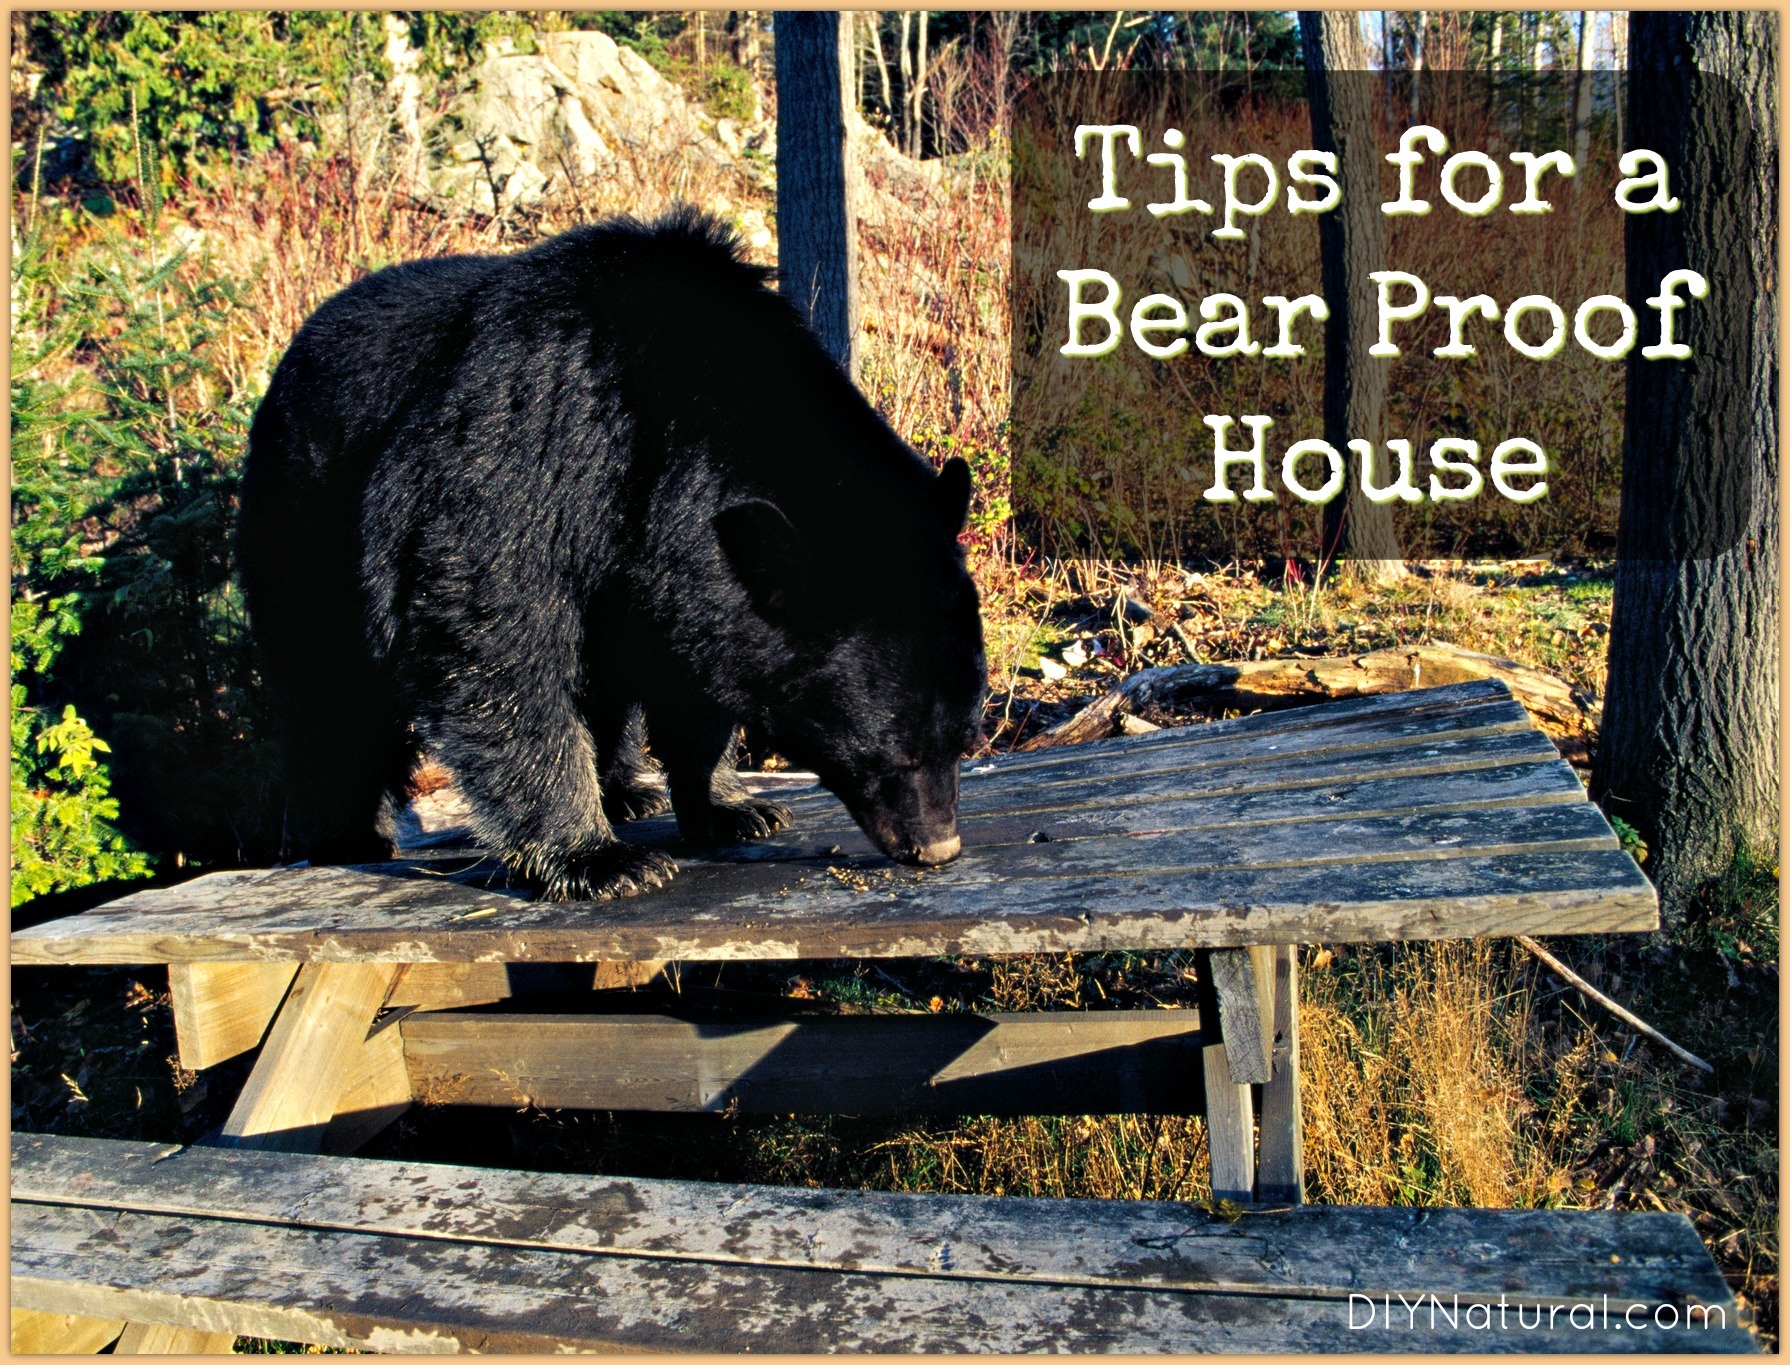 How to Ensure You Have a Bear Proof House Naturally